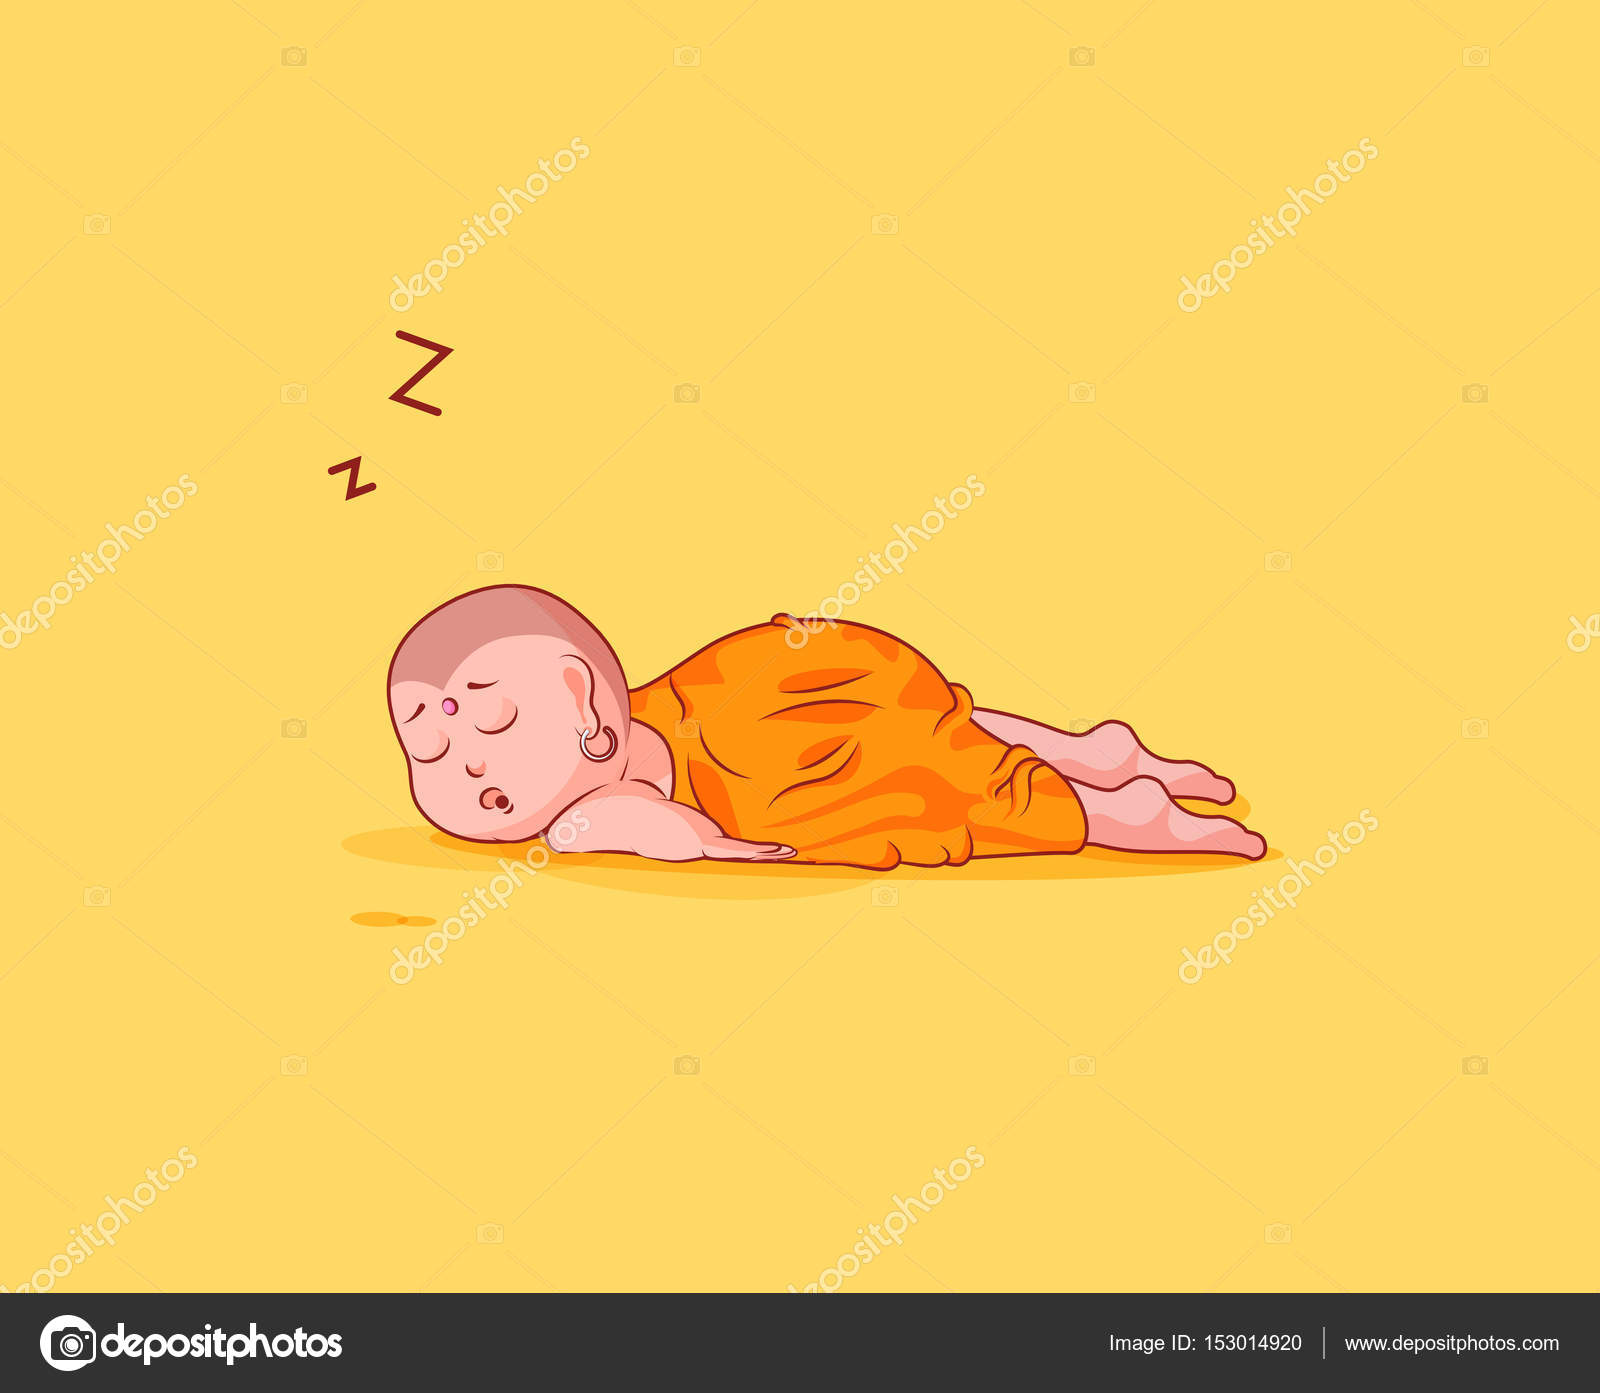 Sticker emoji emoticon emotion vector isolated illustration sticker emoji emoticon emotion vector isolated illustration unhappy character cartoon buddha sleeps on the stomach biocorpaavc Image collections